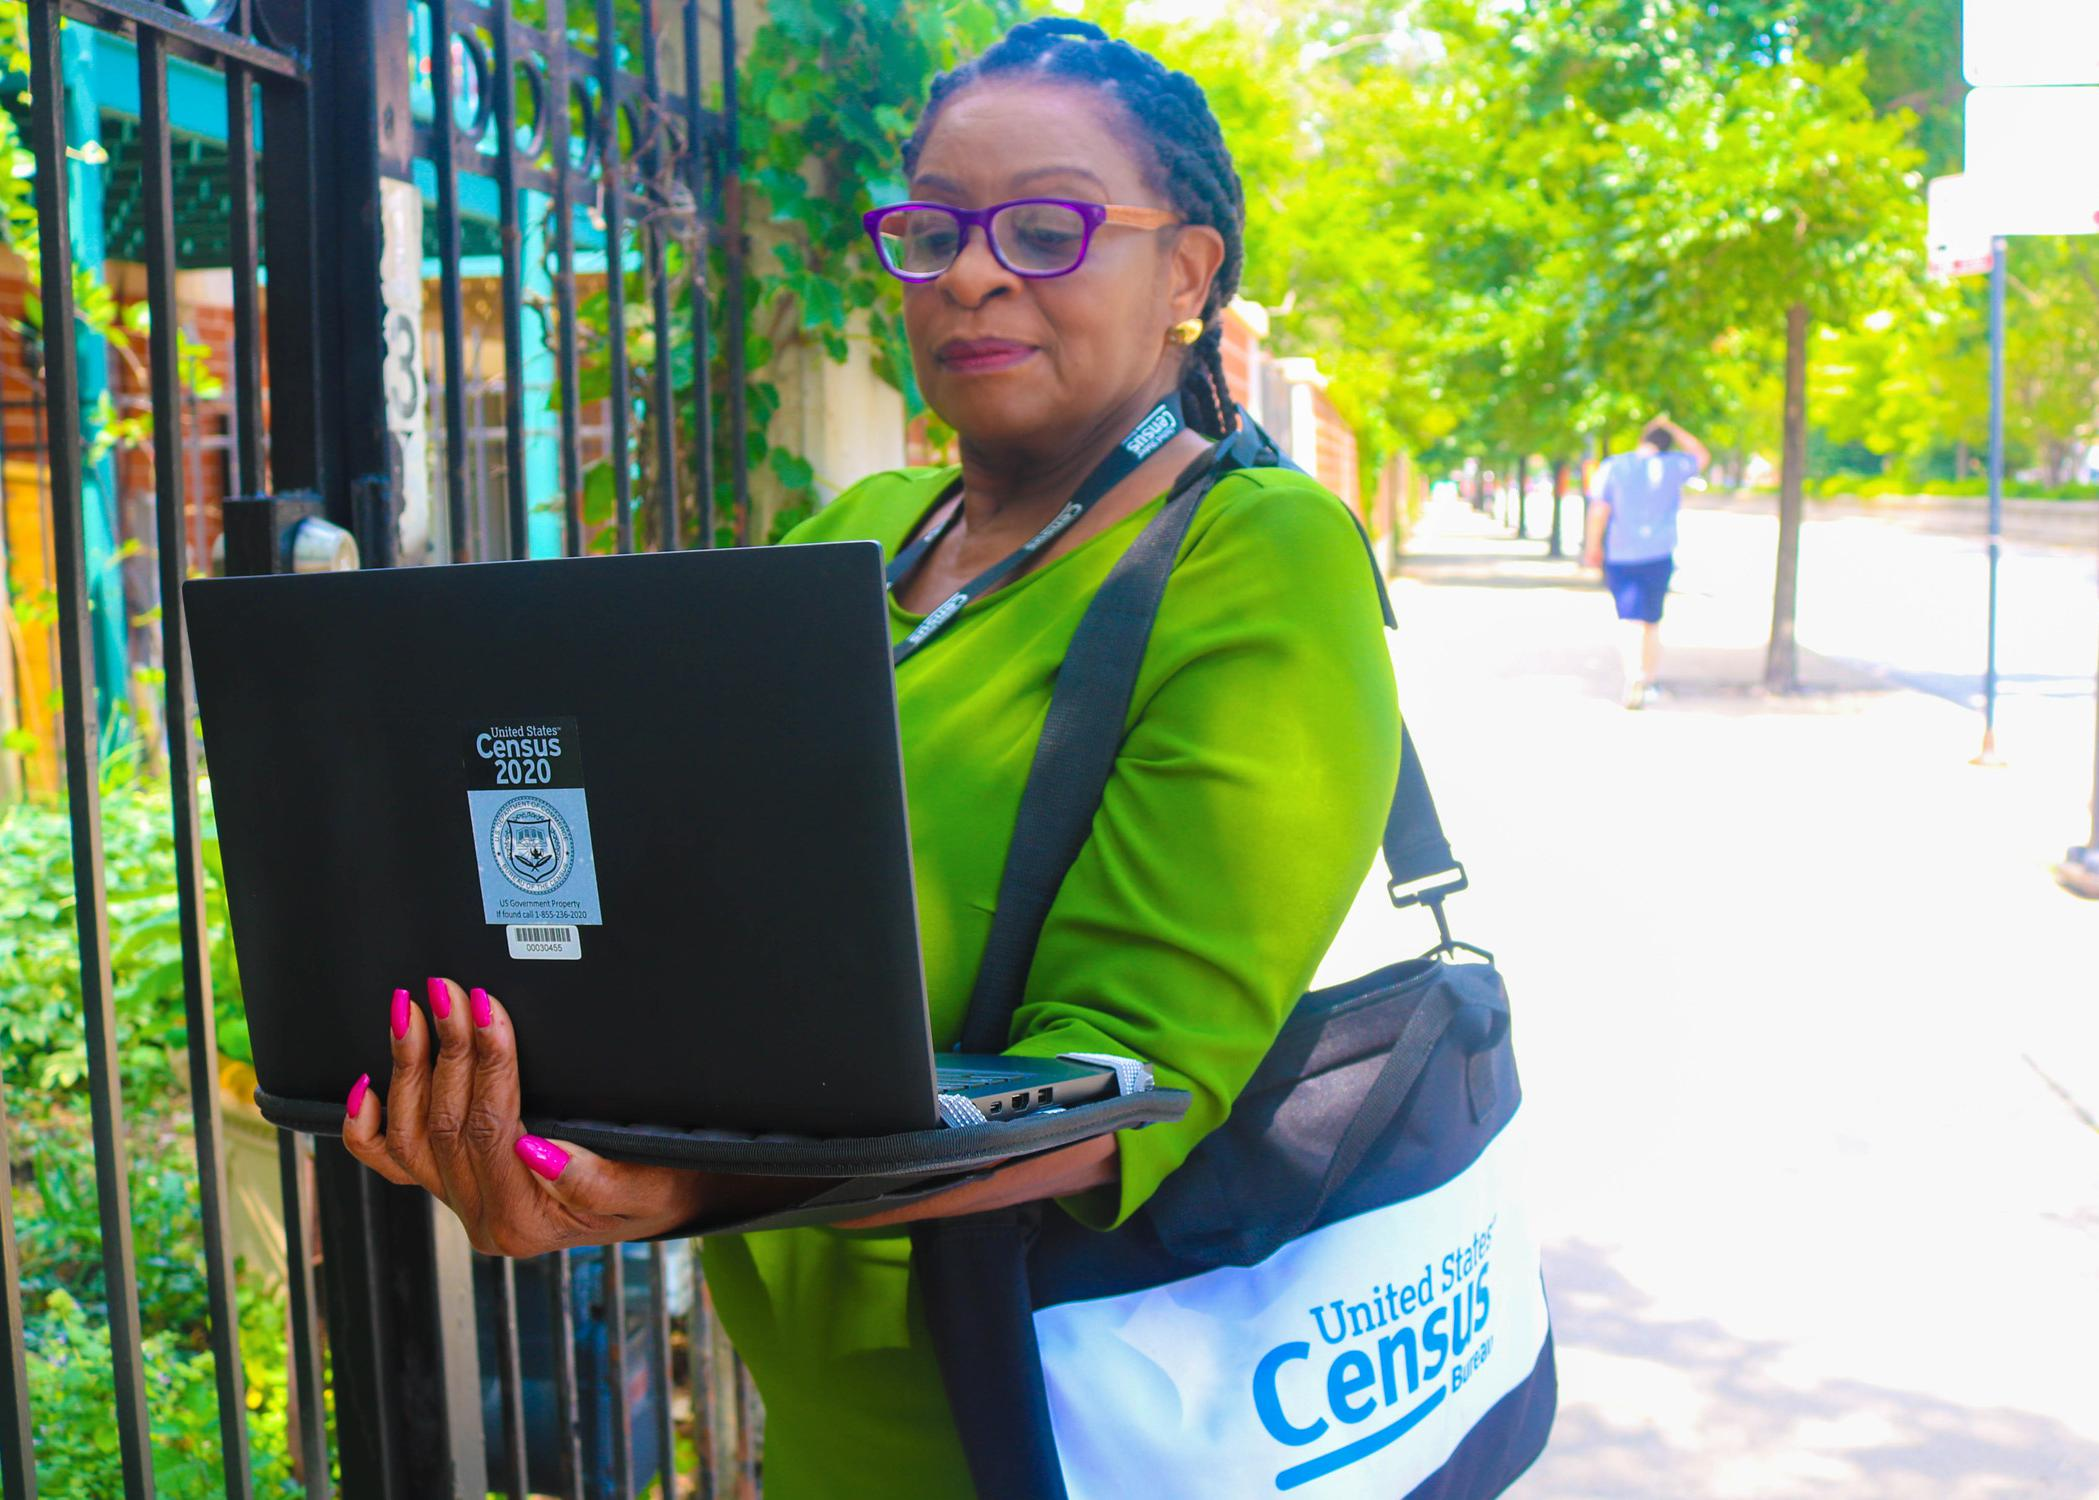 Woman in a green dress with a bag around her shoulder stands in front of a gate holding a laptop computer.